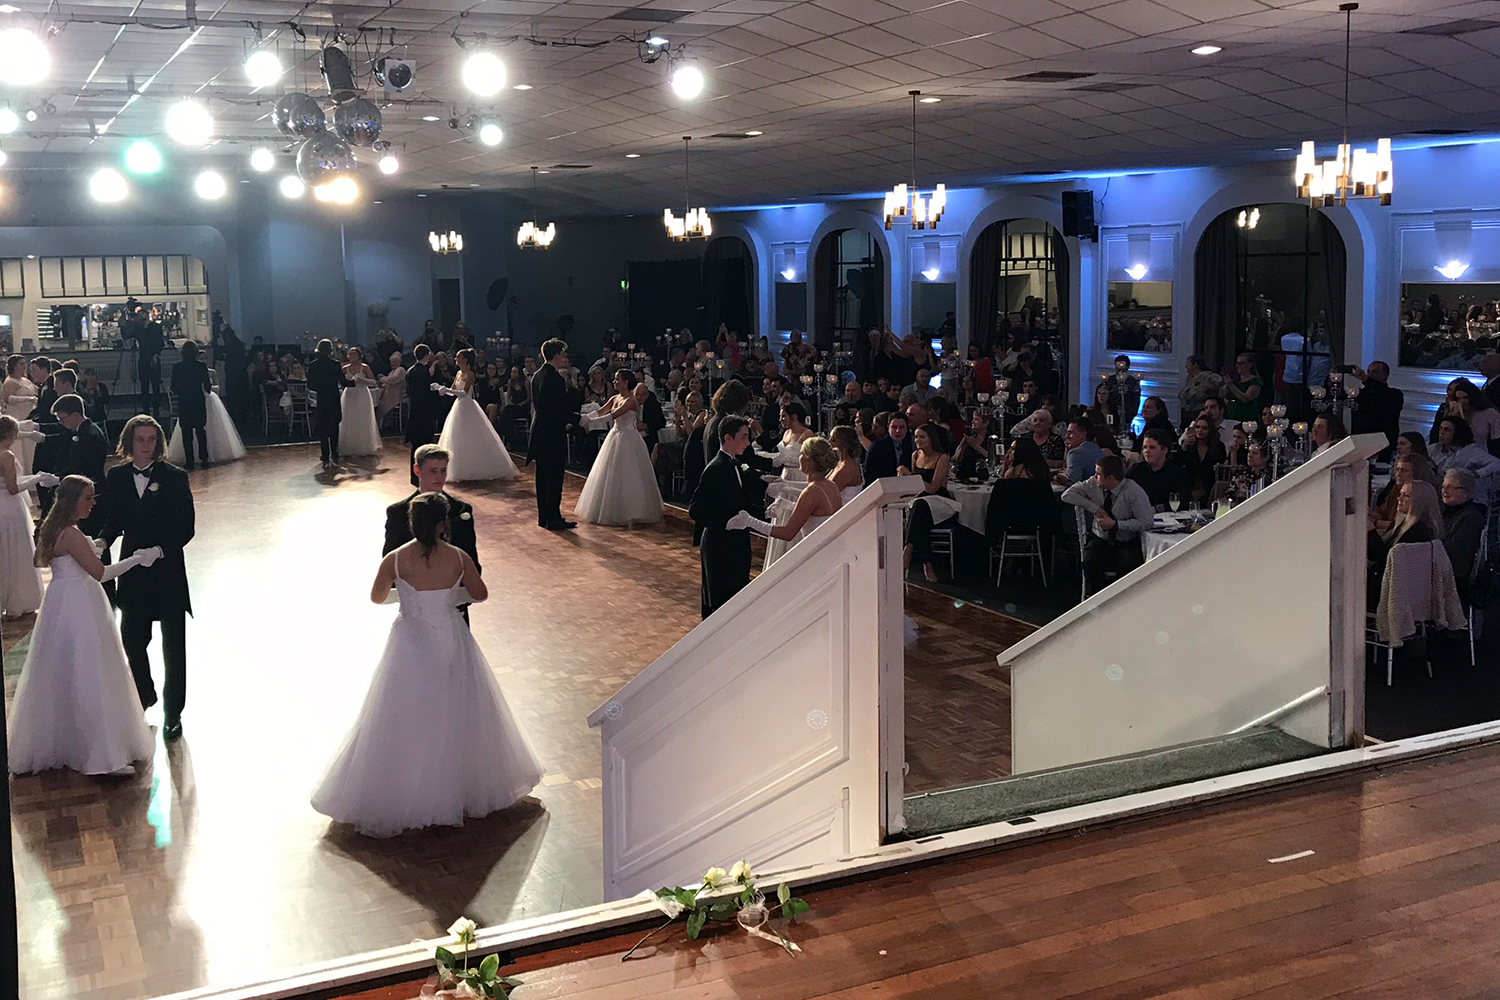 Debutante and presentation ball lessons and choreography available